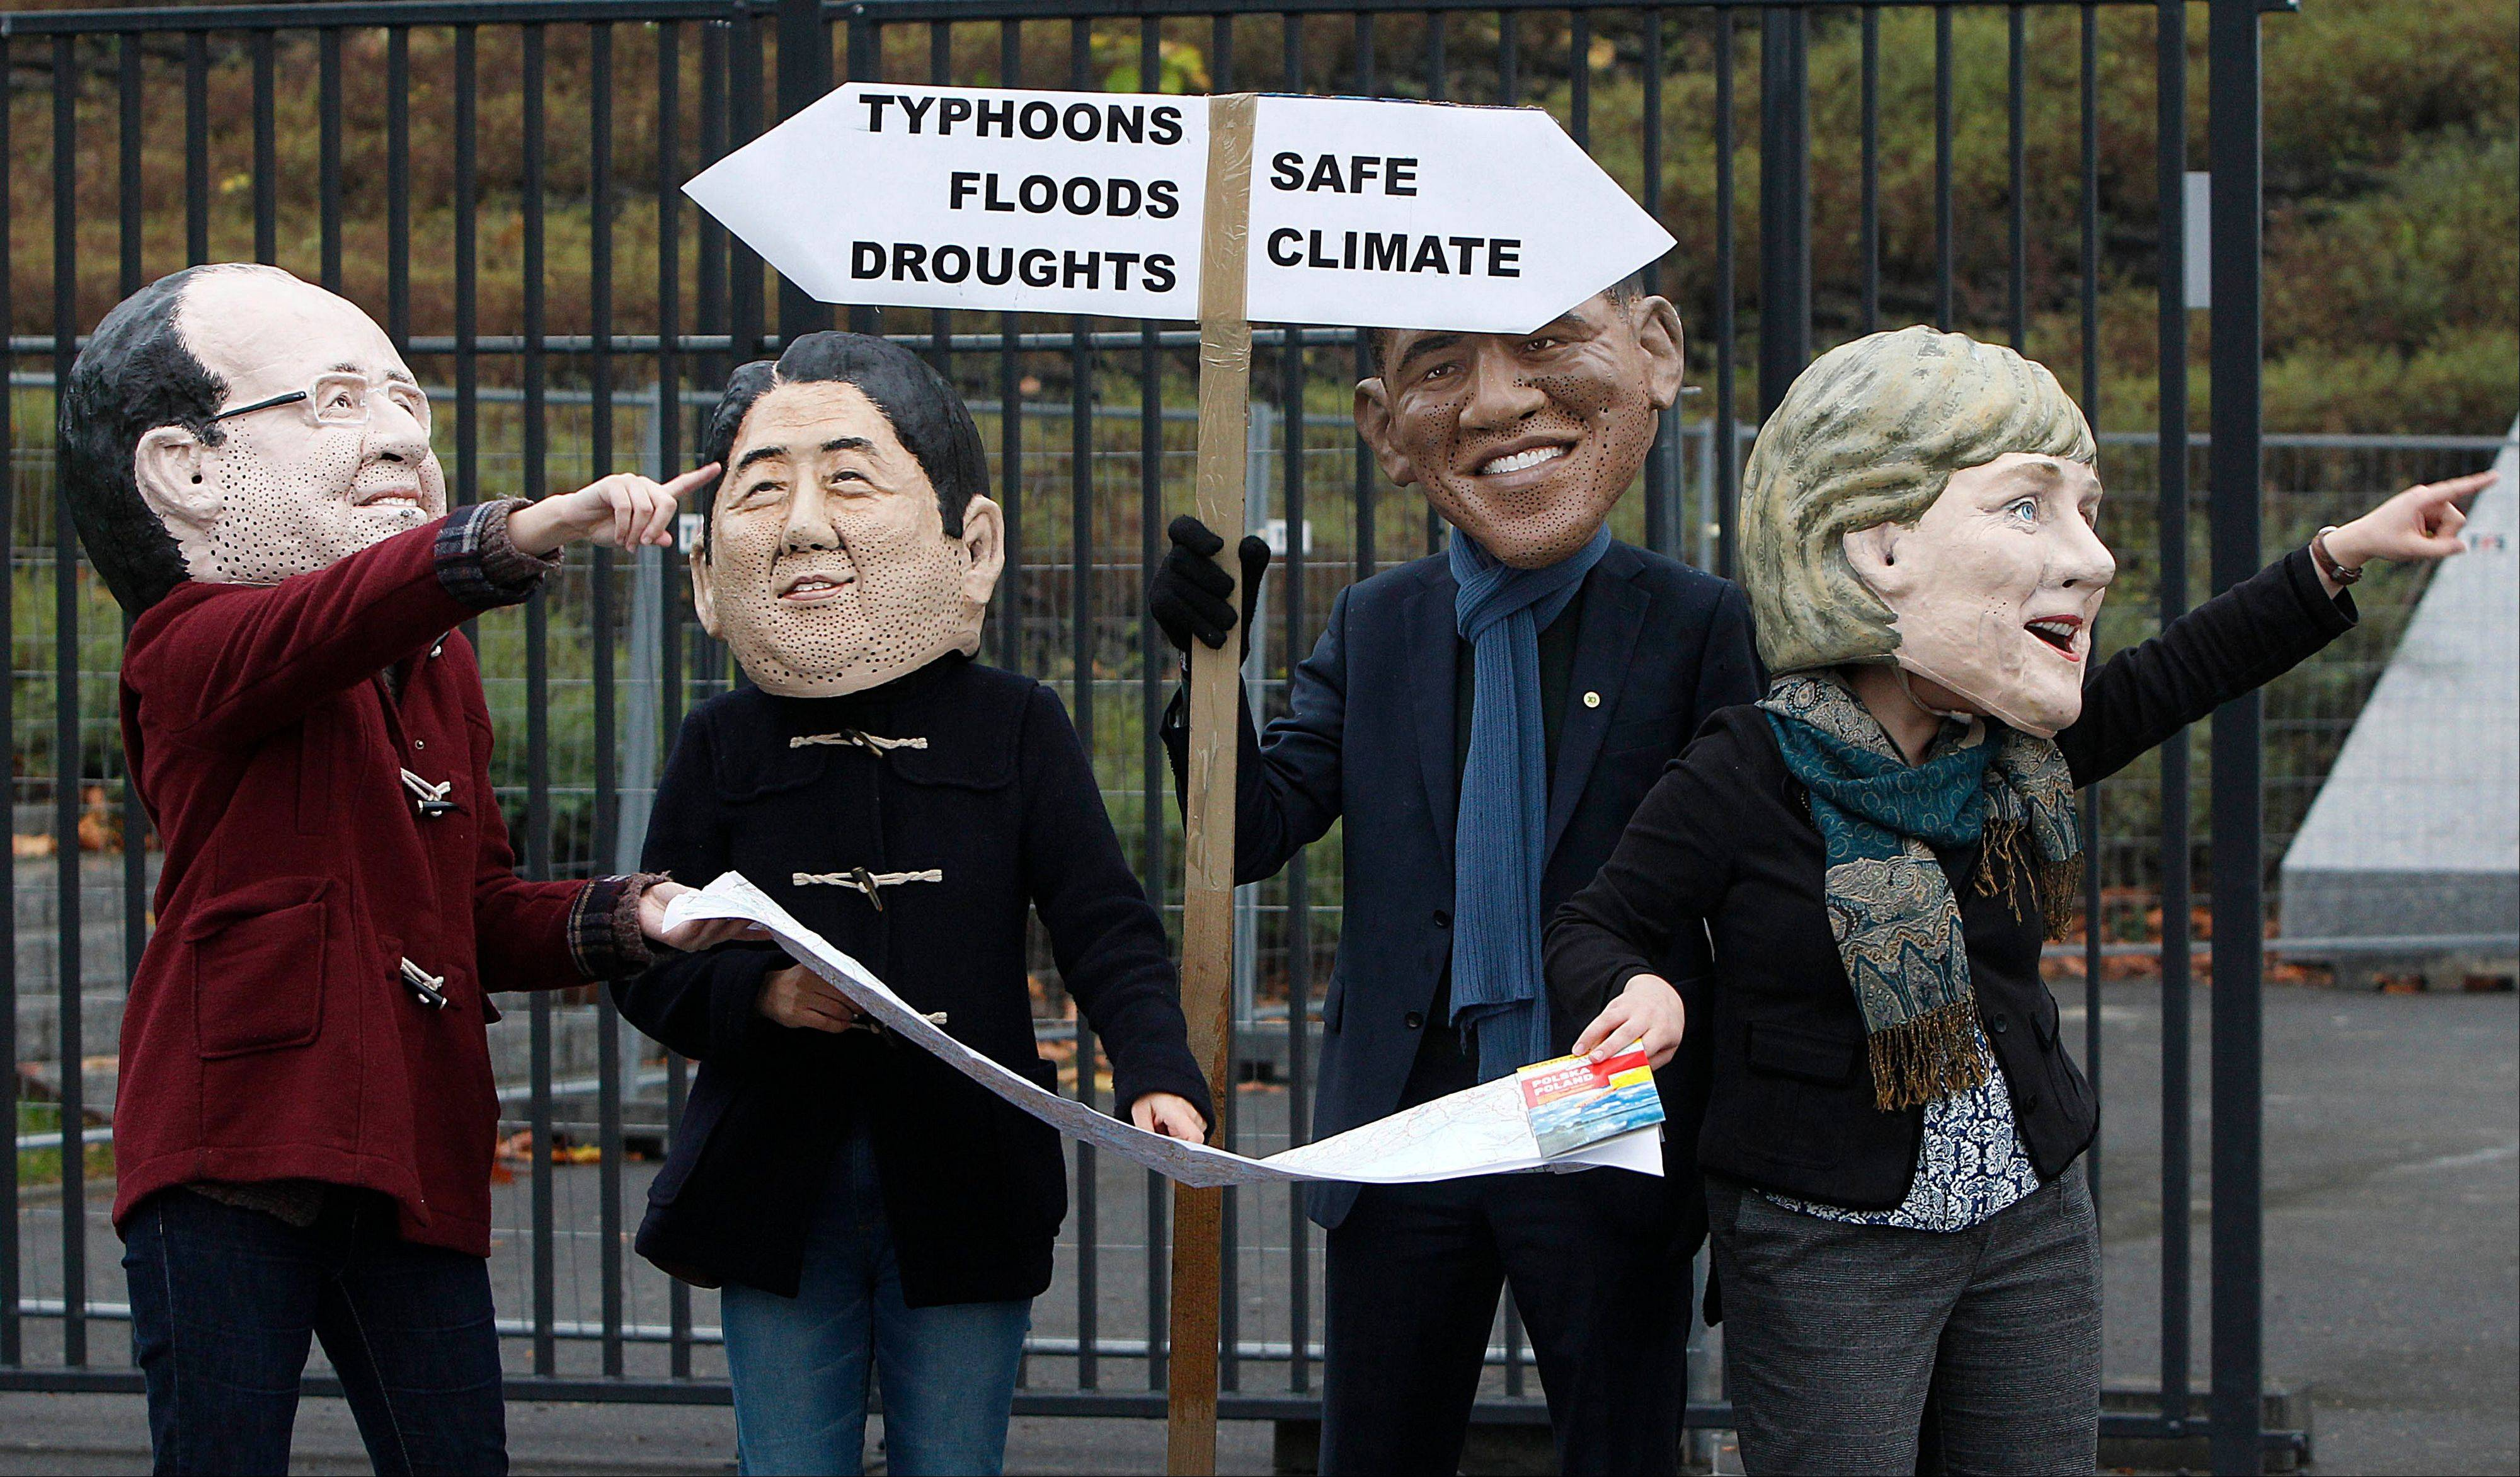 Climate activists protest acting in the role of world leaders who search for a way, in front of the U.N. climate change conference in Warsaw, Poland, Friday. They act, from left to right, as French President Francois Hollande, Japan�s Prime Minister Shinzo Abe, U.S. President Barack Obama and German Chancellor Angela Merkel.